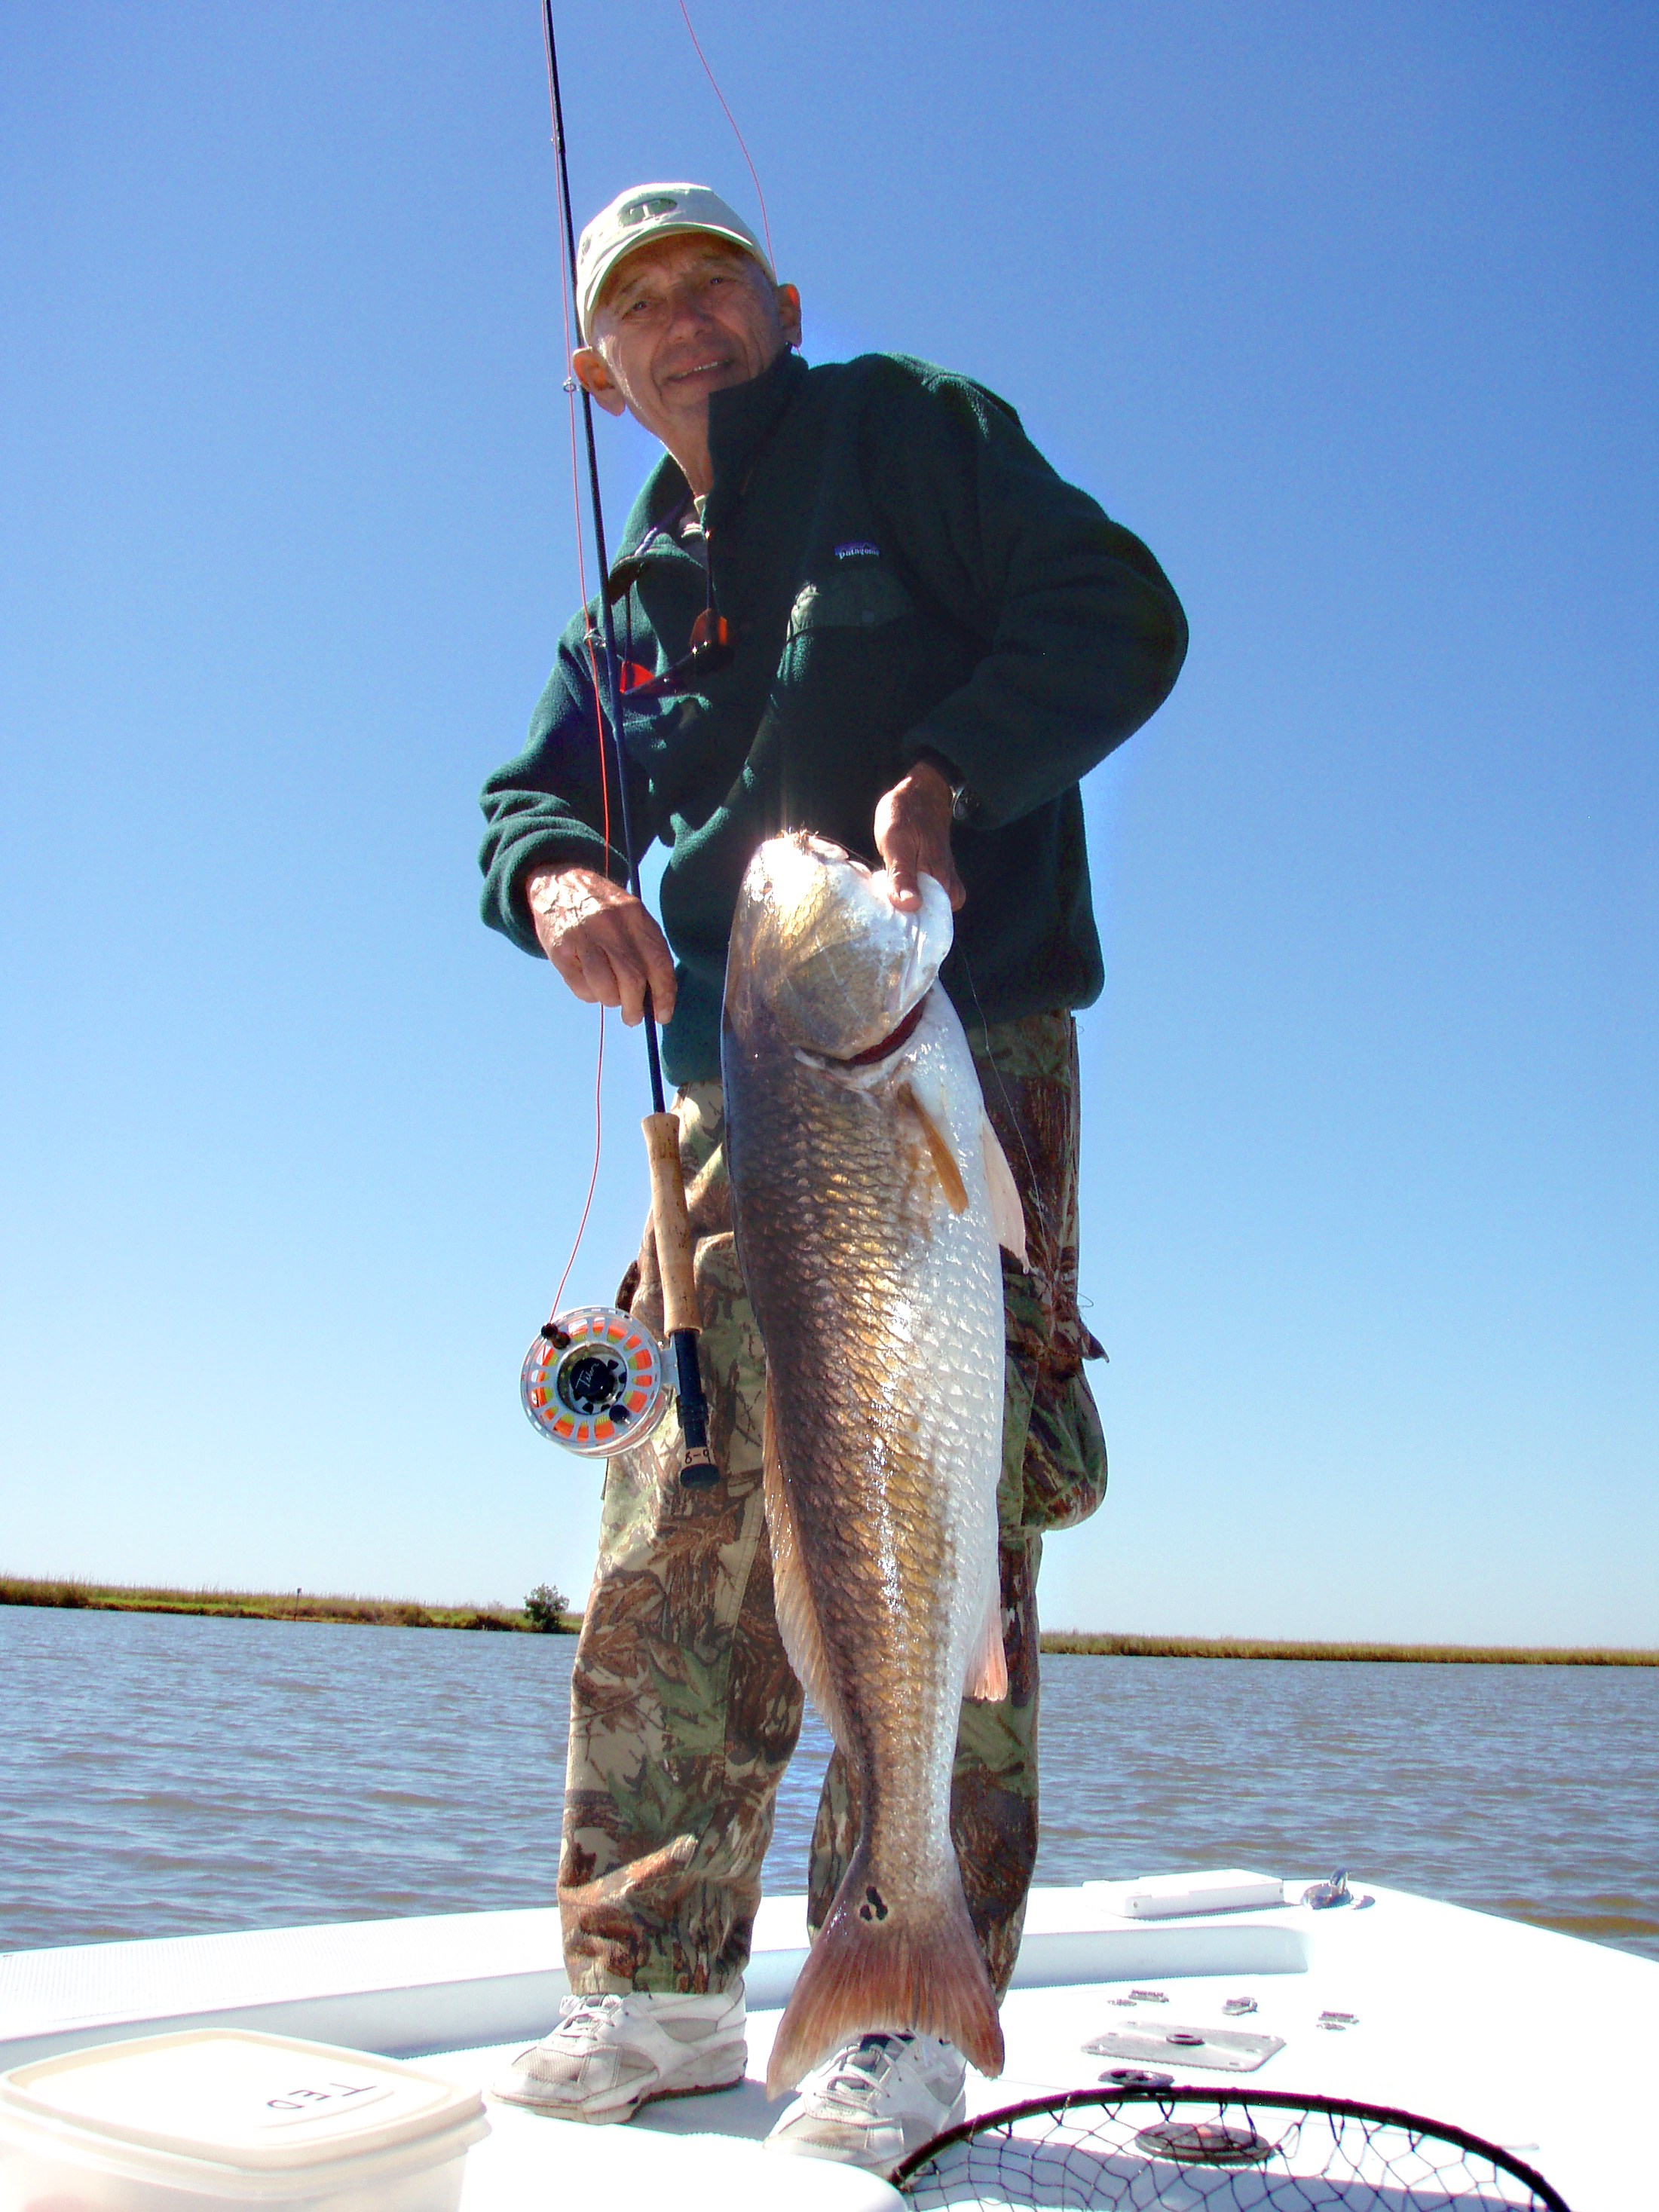 Tibor with a large redfish.